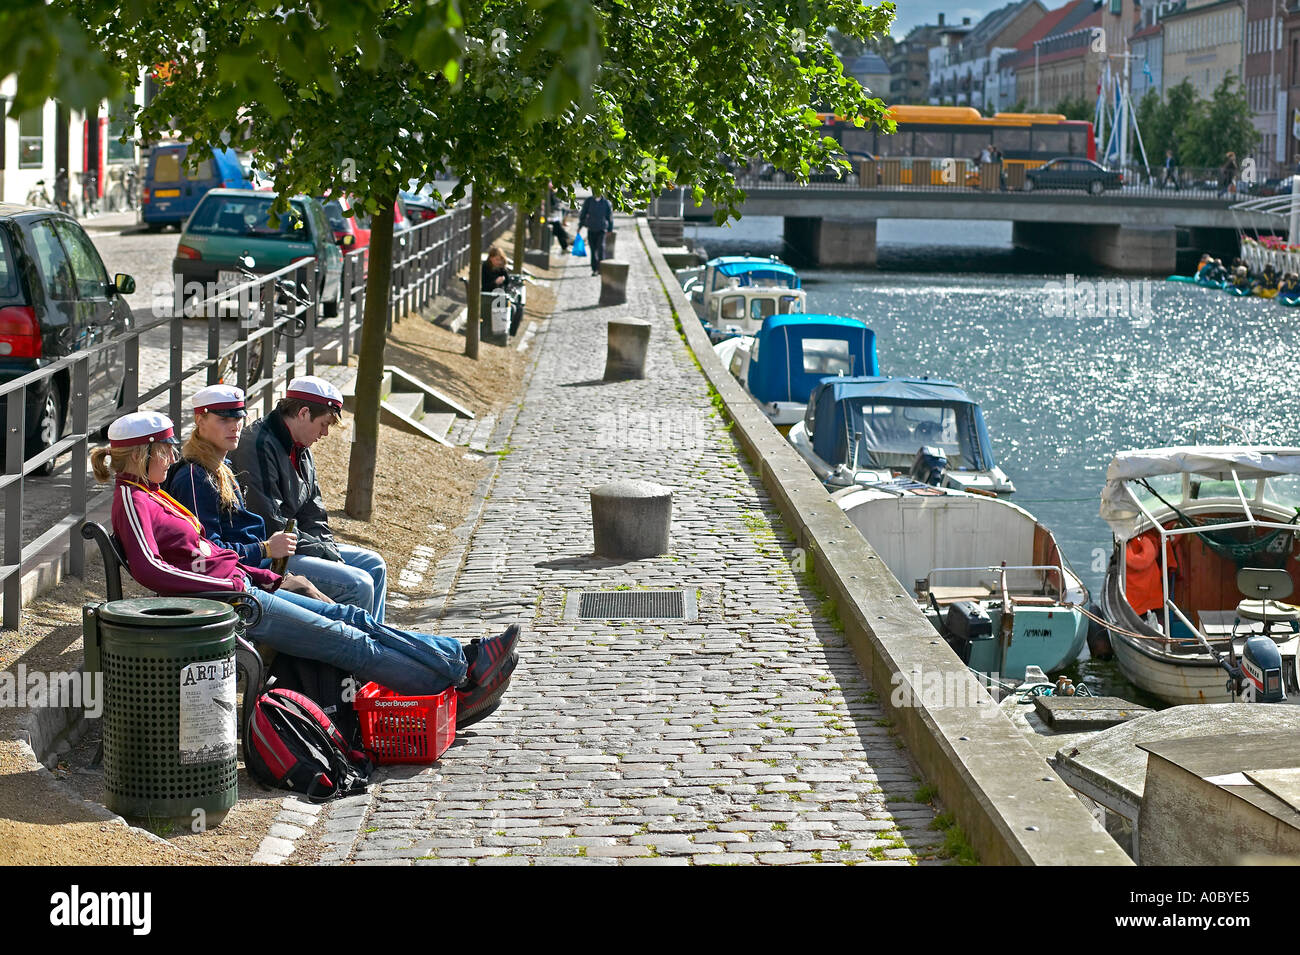 Danish students relaxing on bench at Christianhavn canal, Copenhagen, Denmark - Stock Image